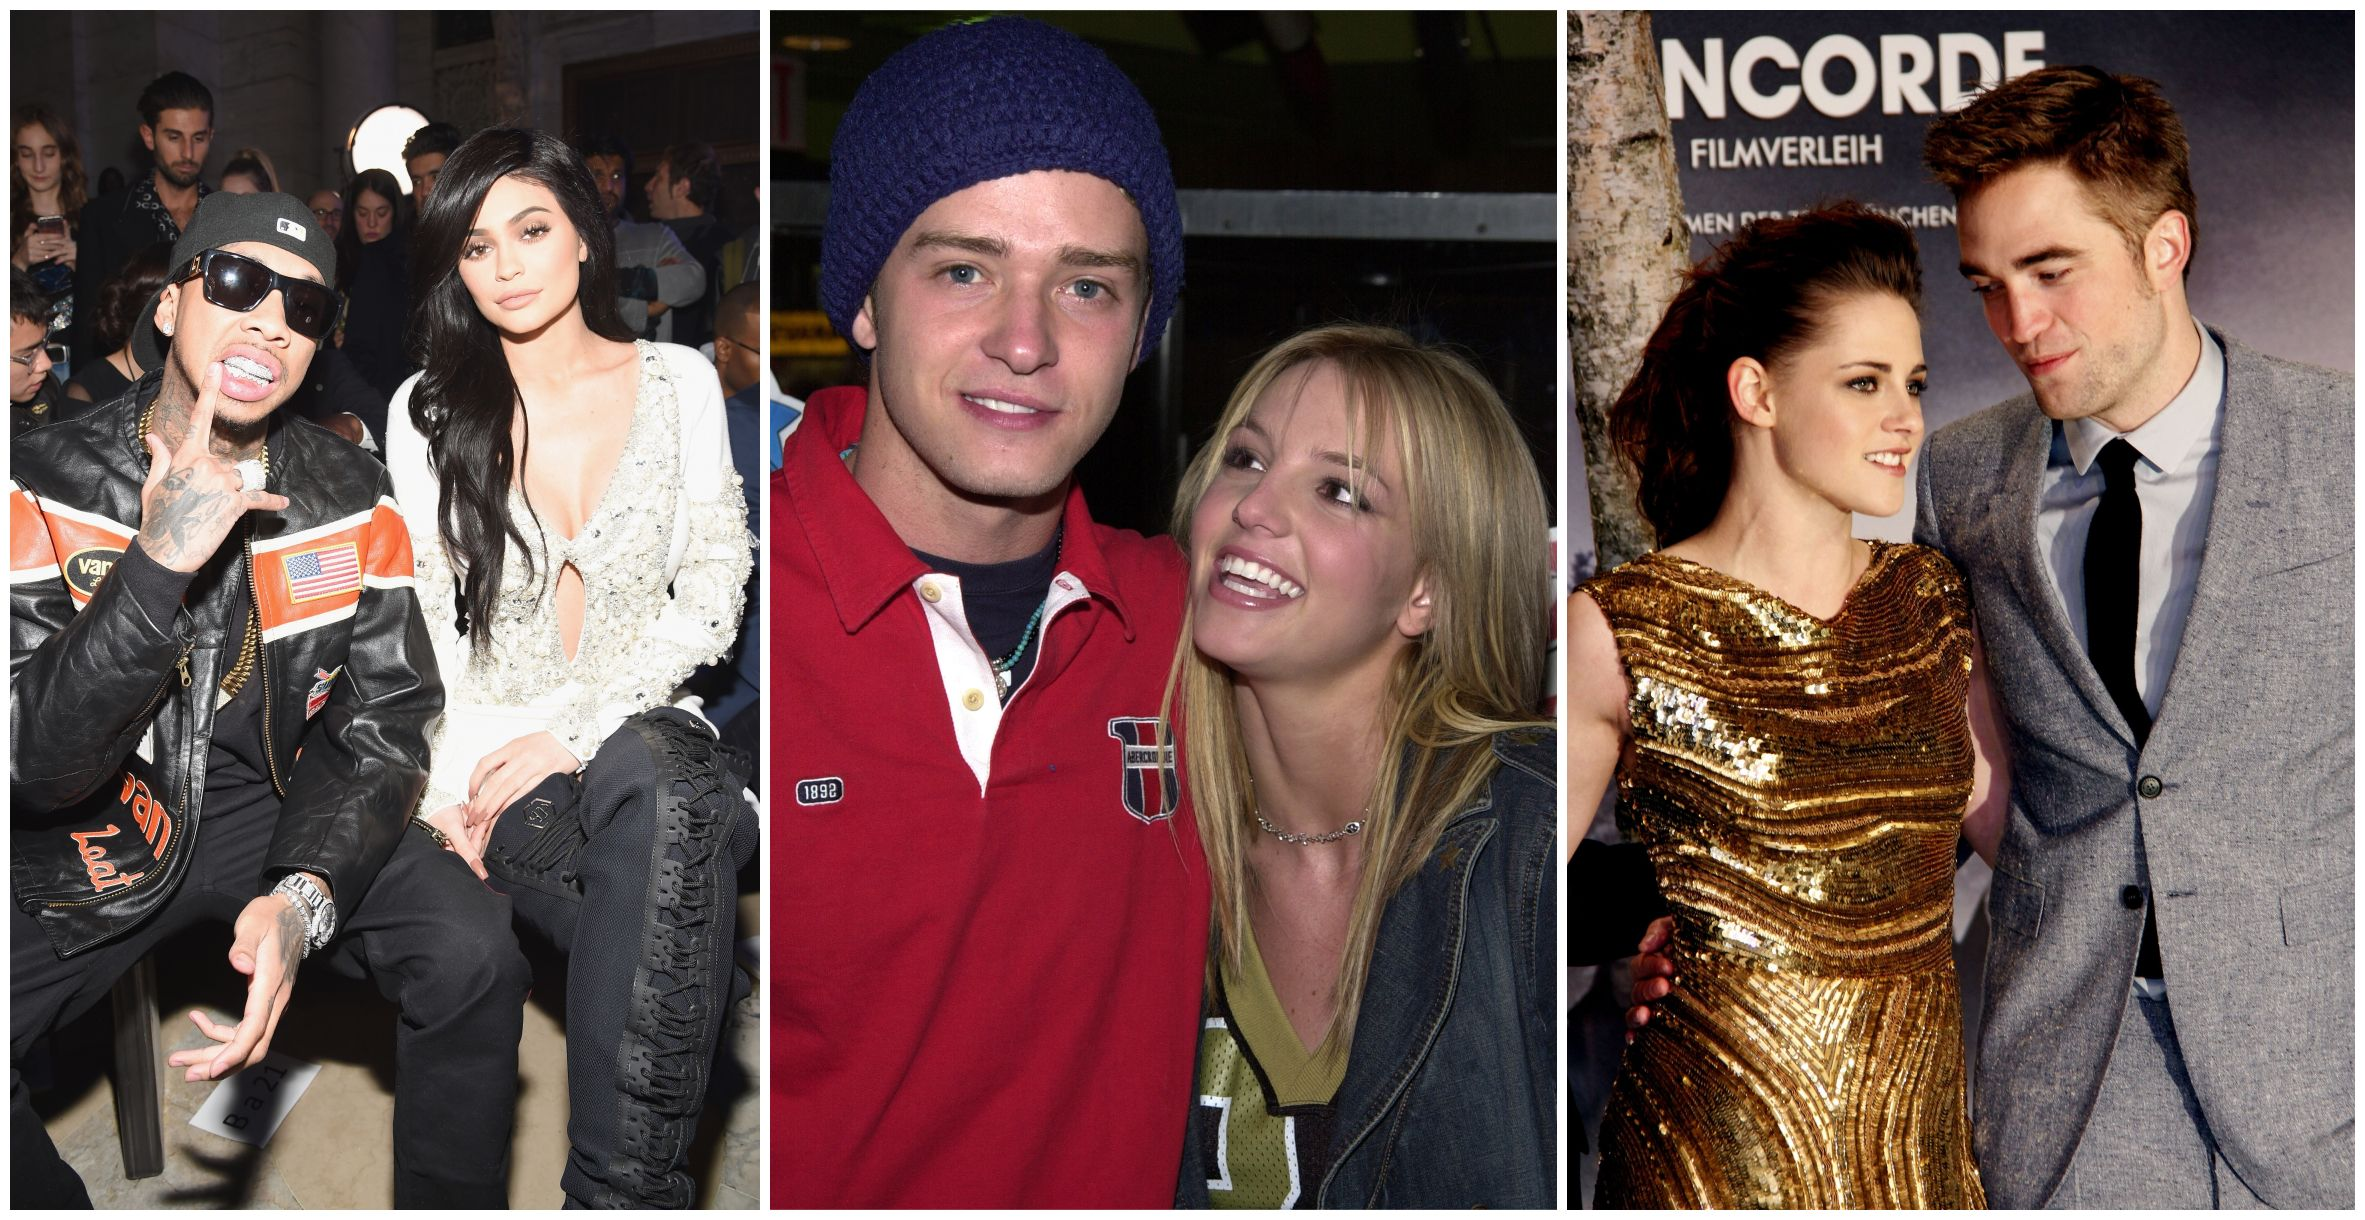 15 Shocking Celebrity Cheating Scandals - Celebs You Didn't Know Cheated